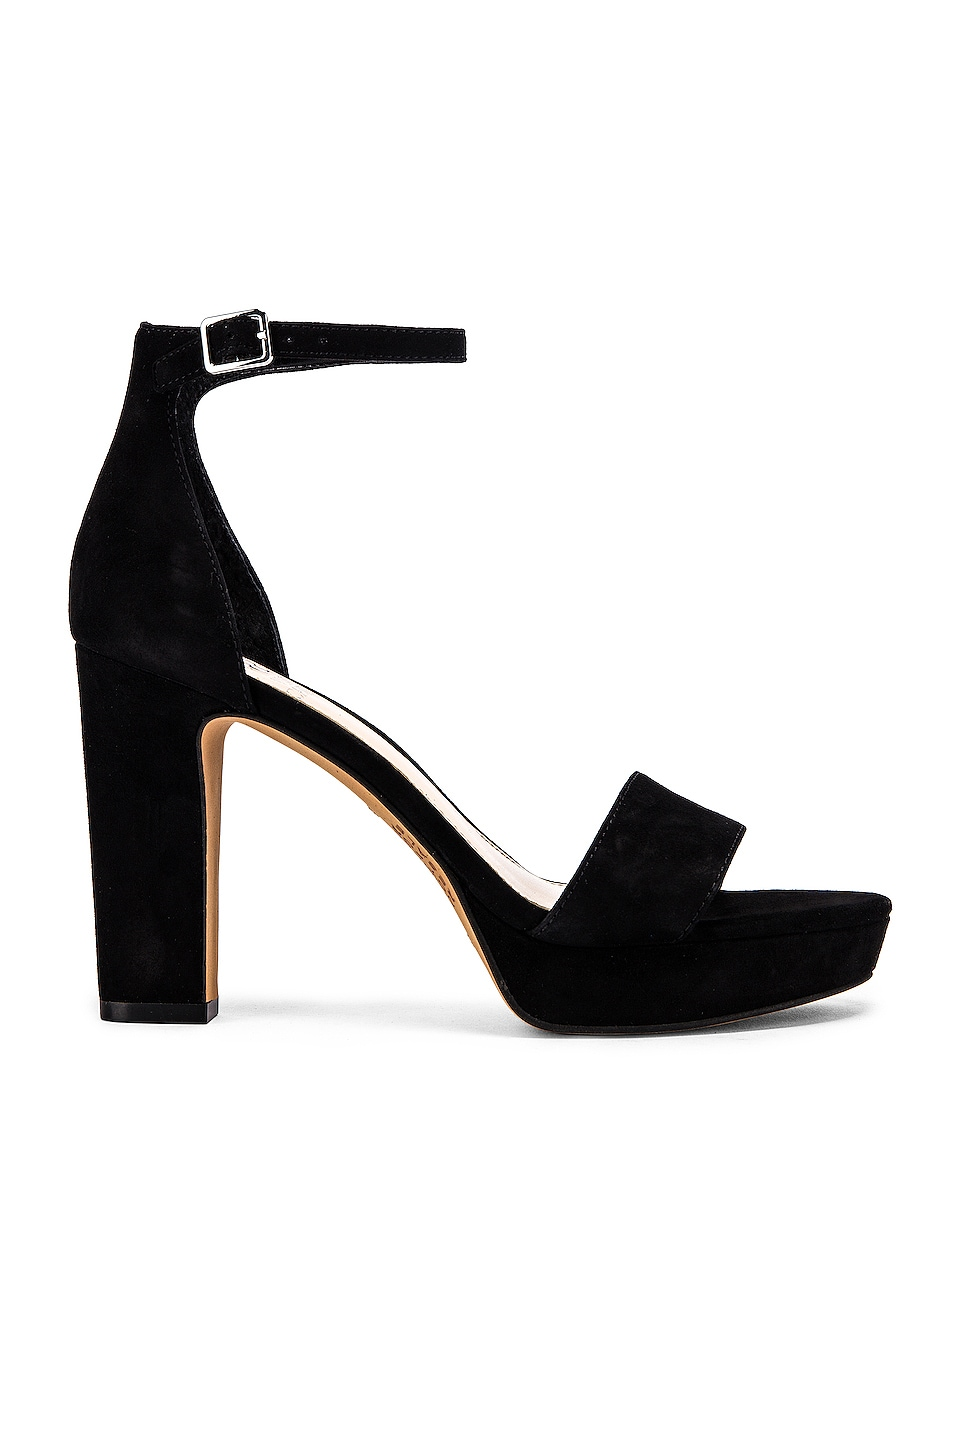 Vince Camuto Sathina Heel in Black